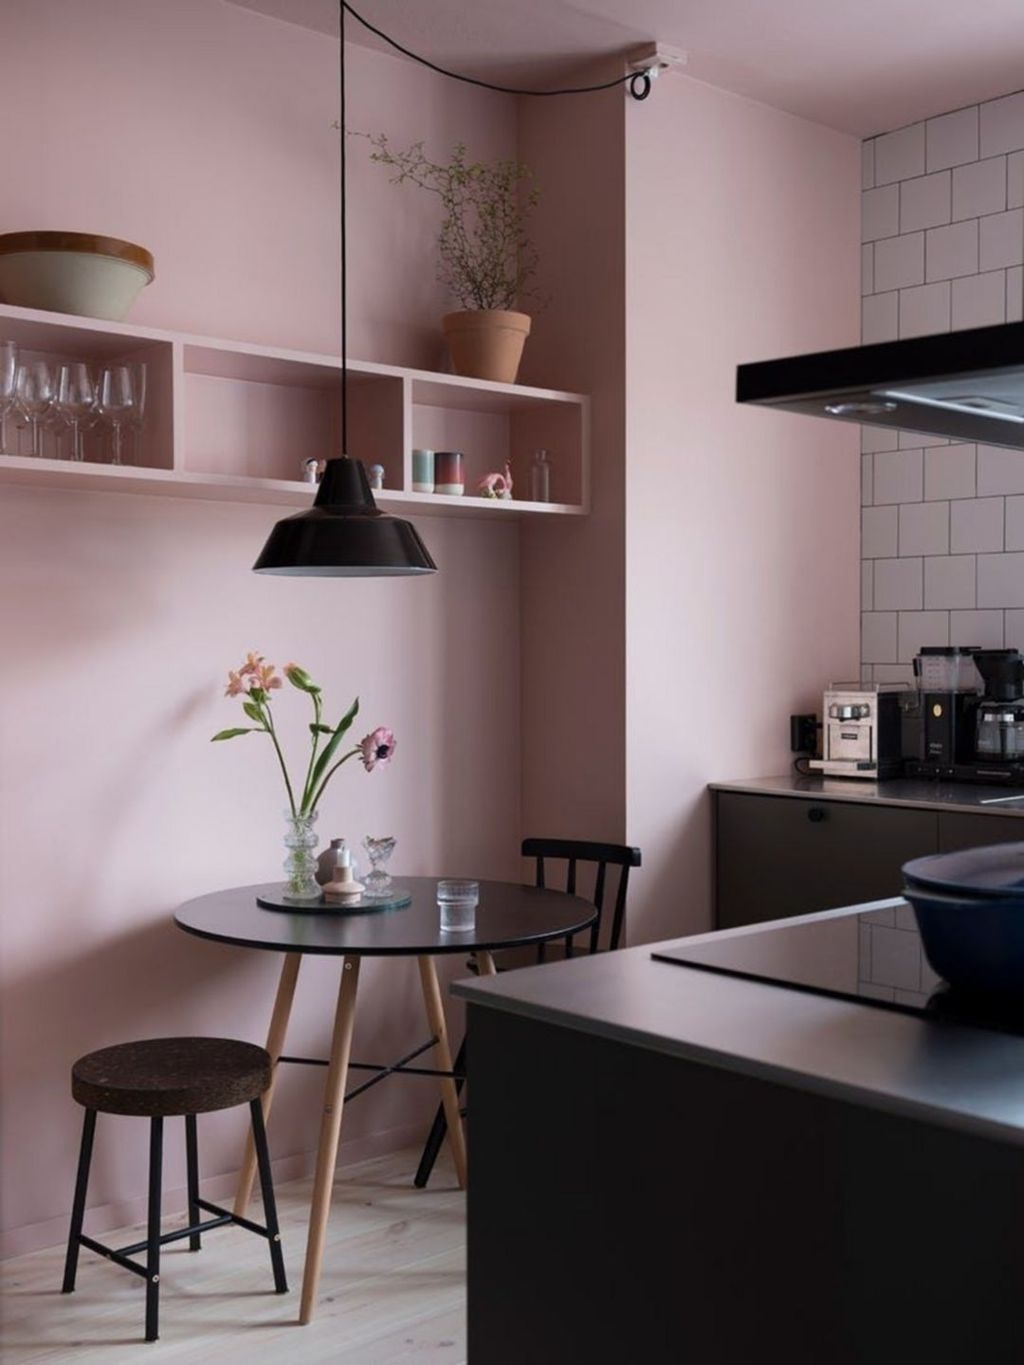 Unordinary Kitchen Colors Design Ideas That Looks Cool36